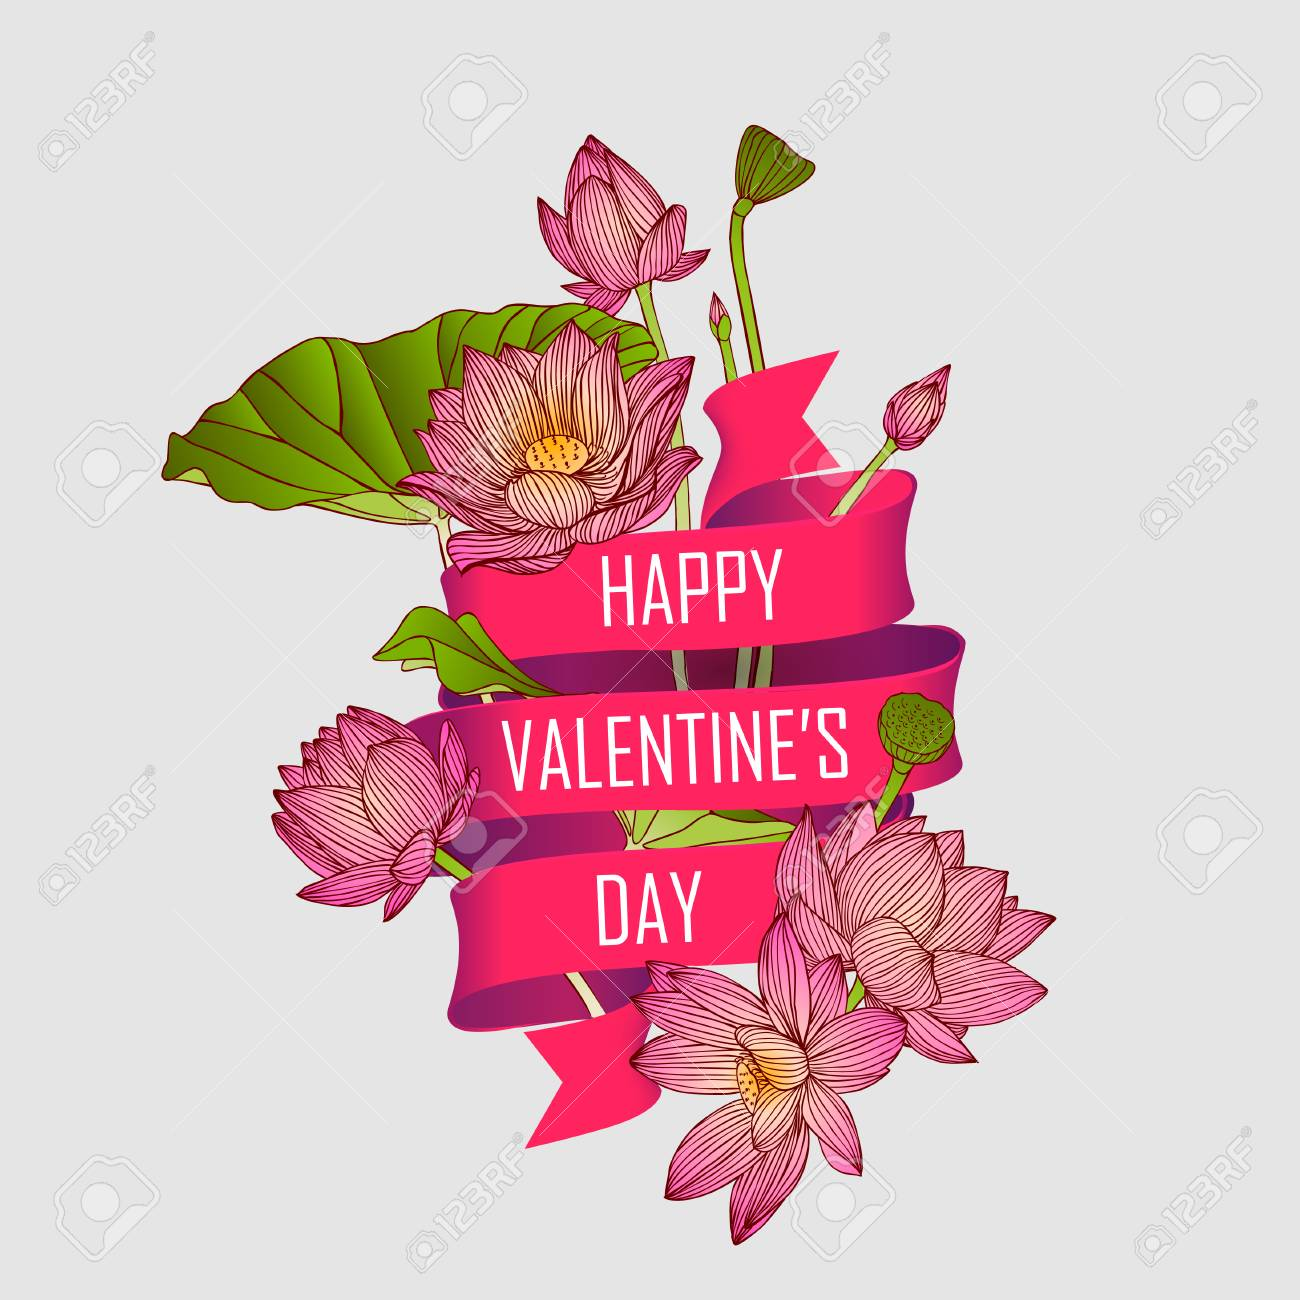 Card With Lotus Flowers And A Ribbon That Says Happy Valentines